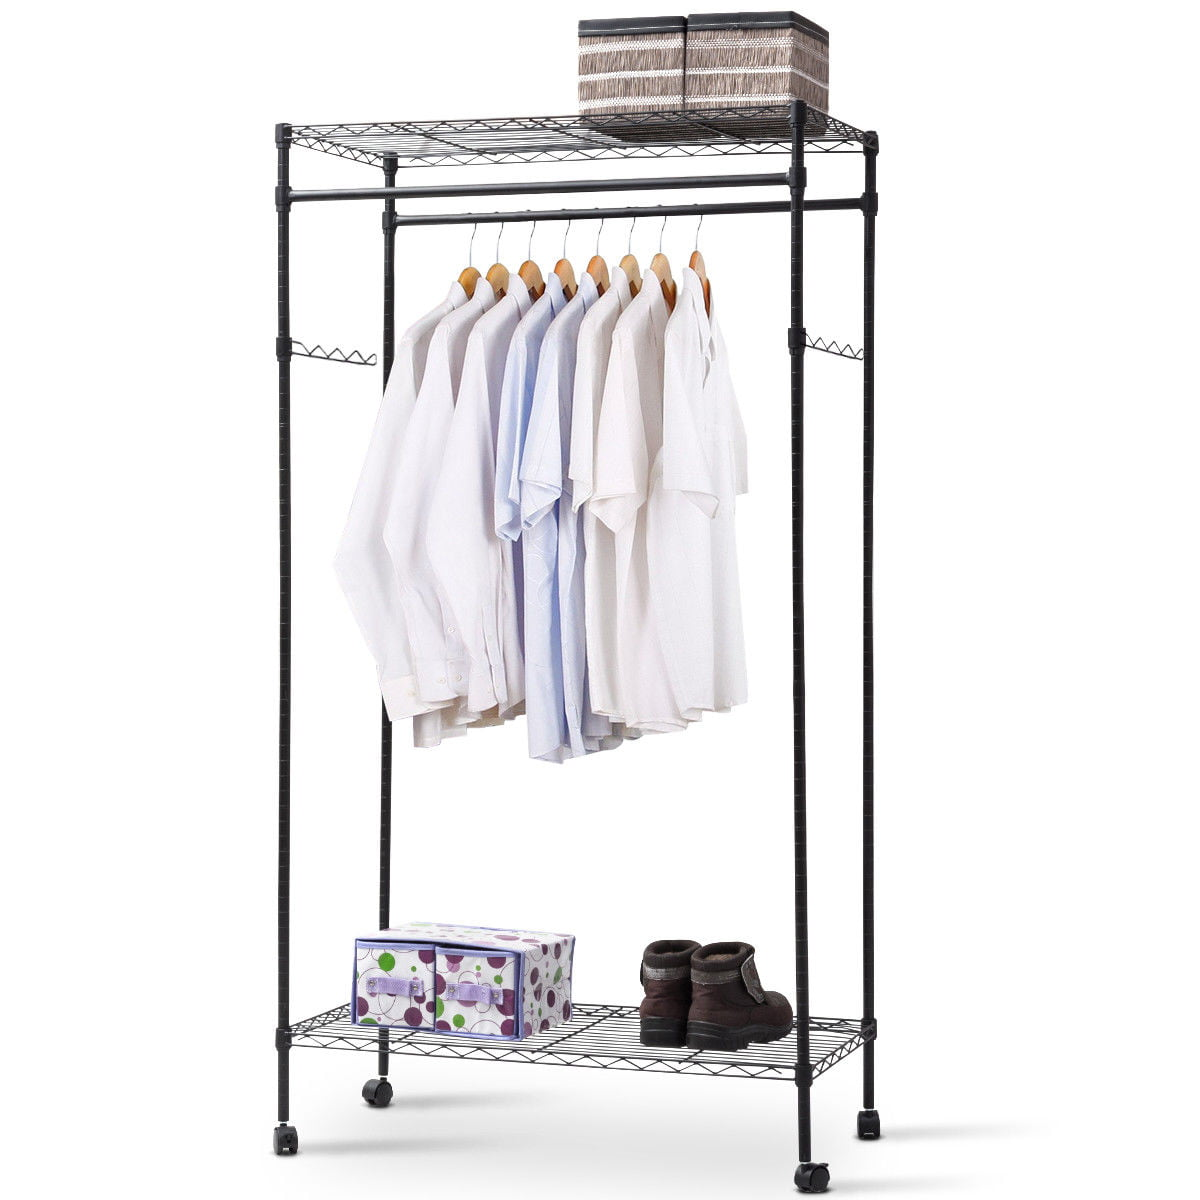 Rolling Closet Organizer Brown Clothing Garment Rack 2-in-1 Coat Rack Rolling Garment Rack Height Adjustable with 2 Storage Baskets,Lockable Wheels